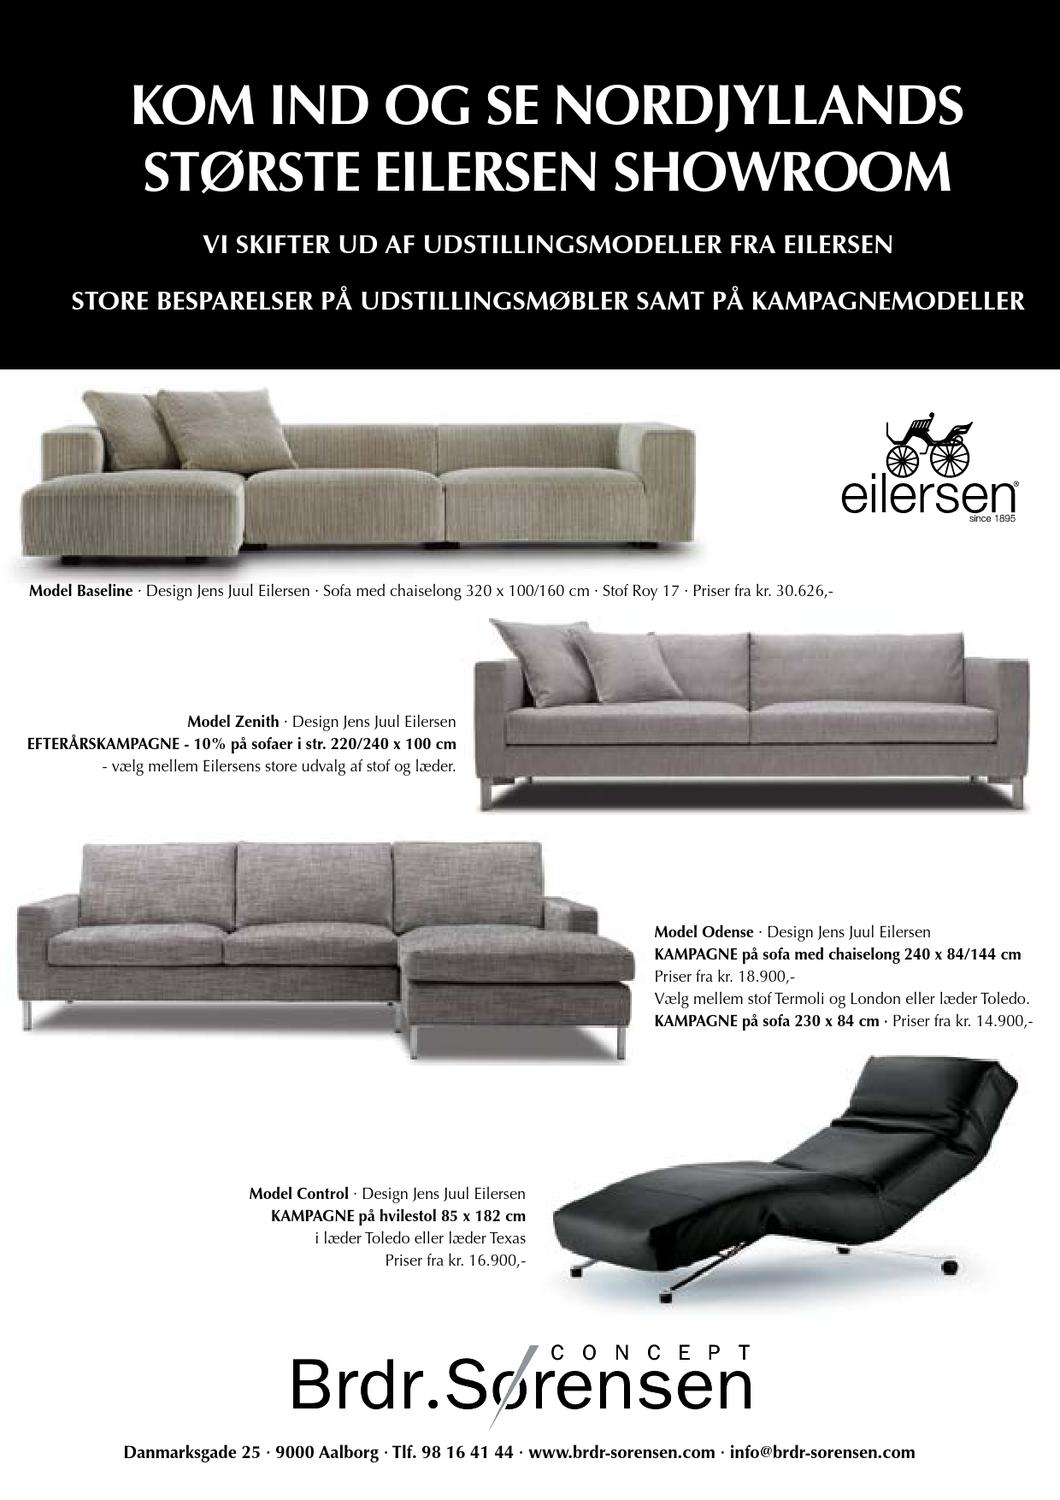 eilersen sofa baseline m chaiselong flexsteel gray leather reclining live magazine 02 2013 by carsten plougmann issuu